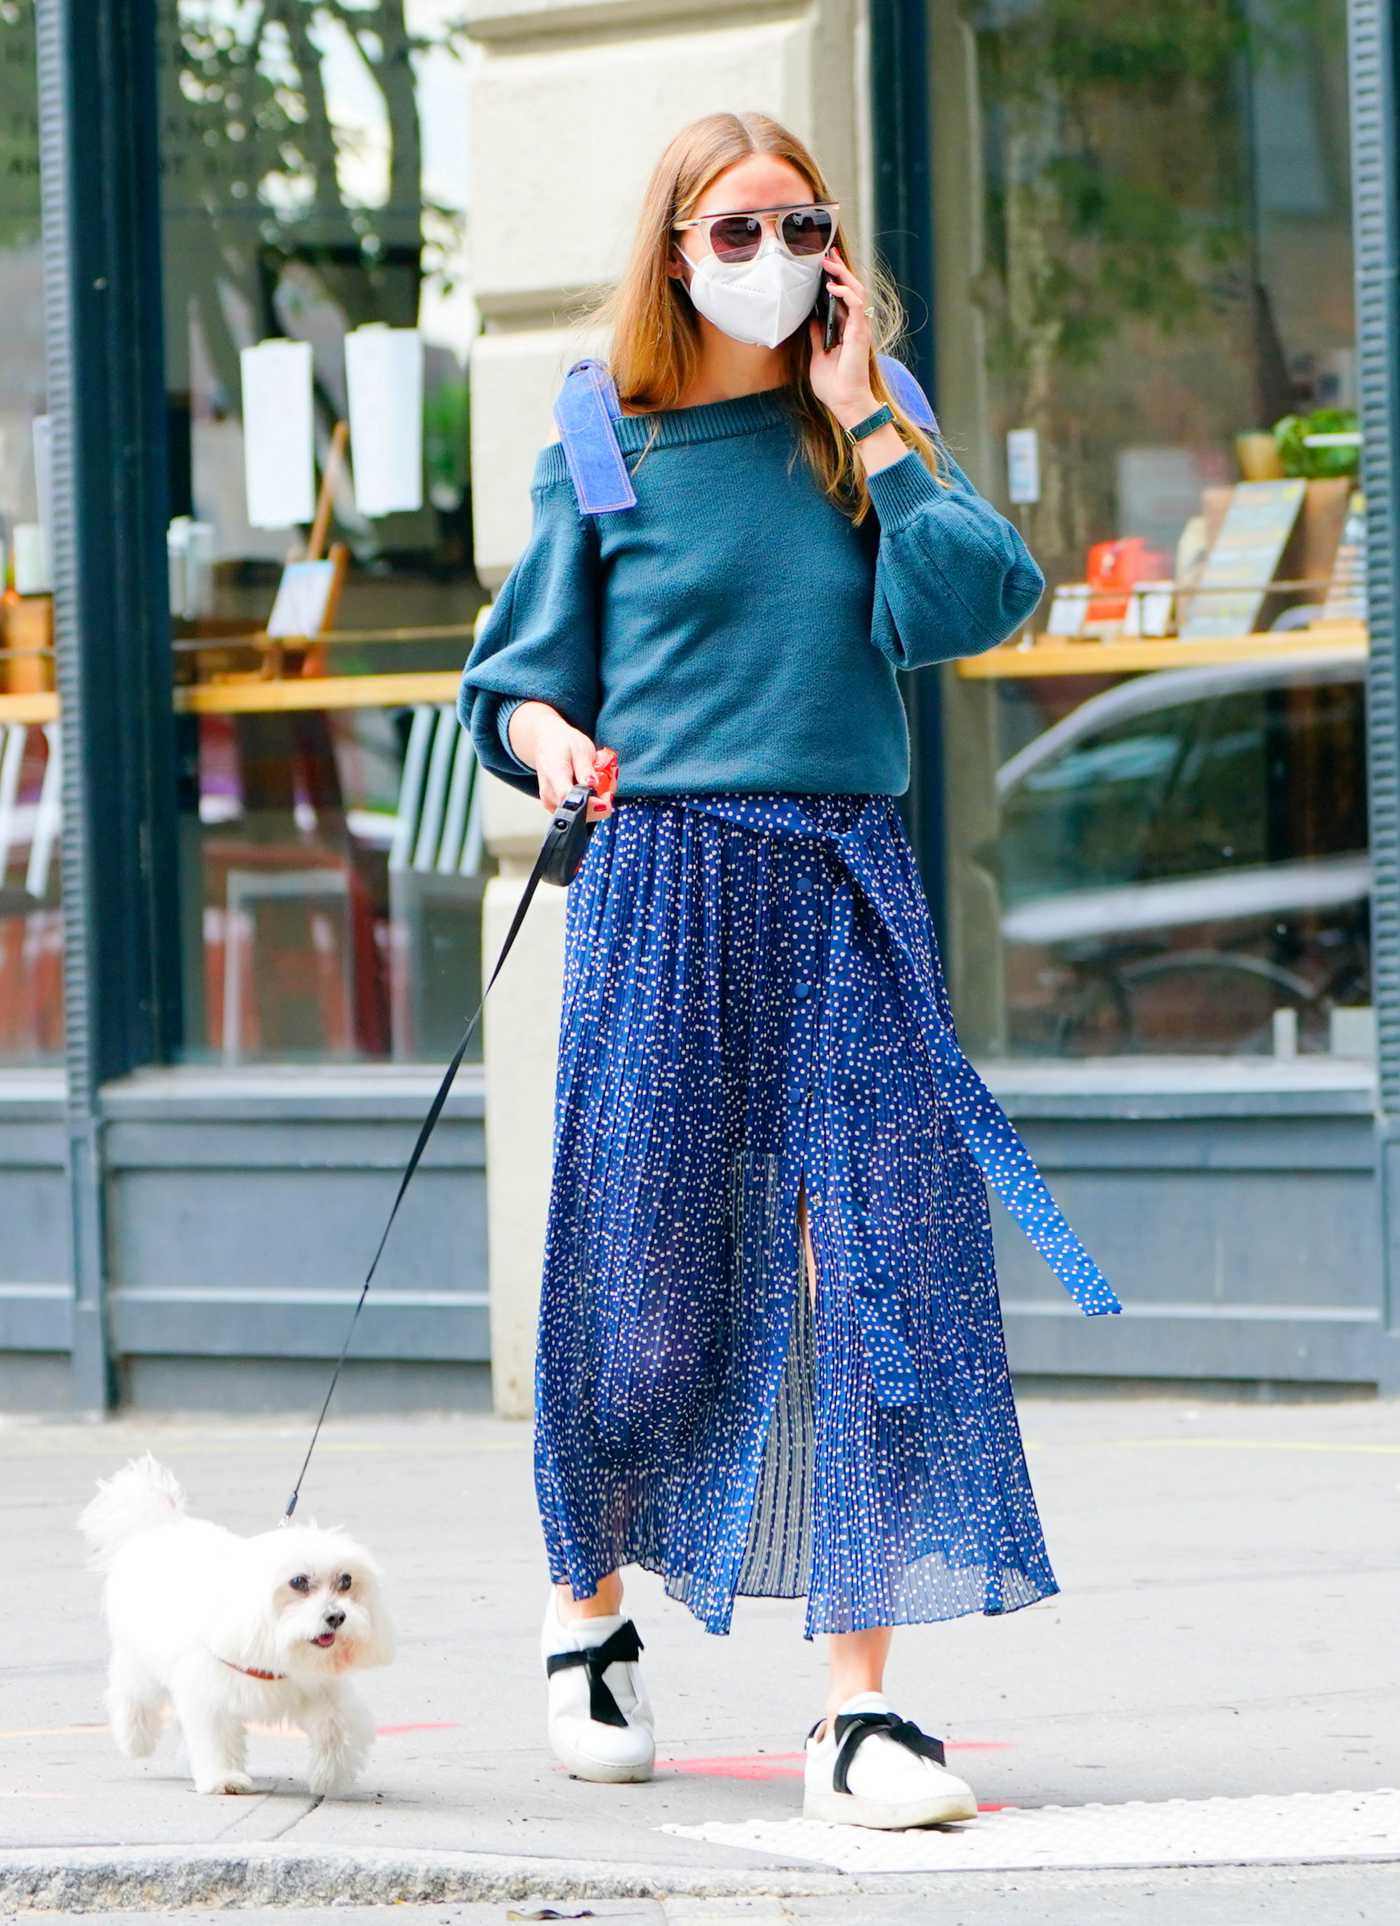 Olivia Palermo in a Blue Skirt Walks Her Dog in Brooklyn, New York 07/01/2020